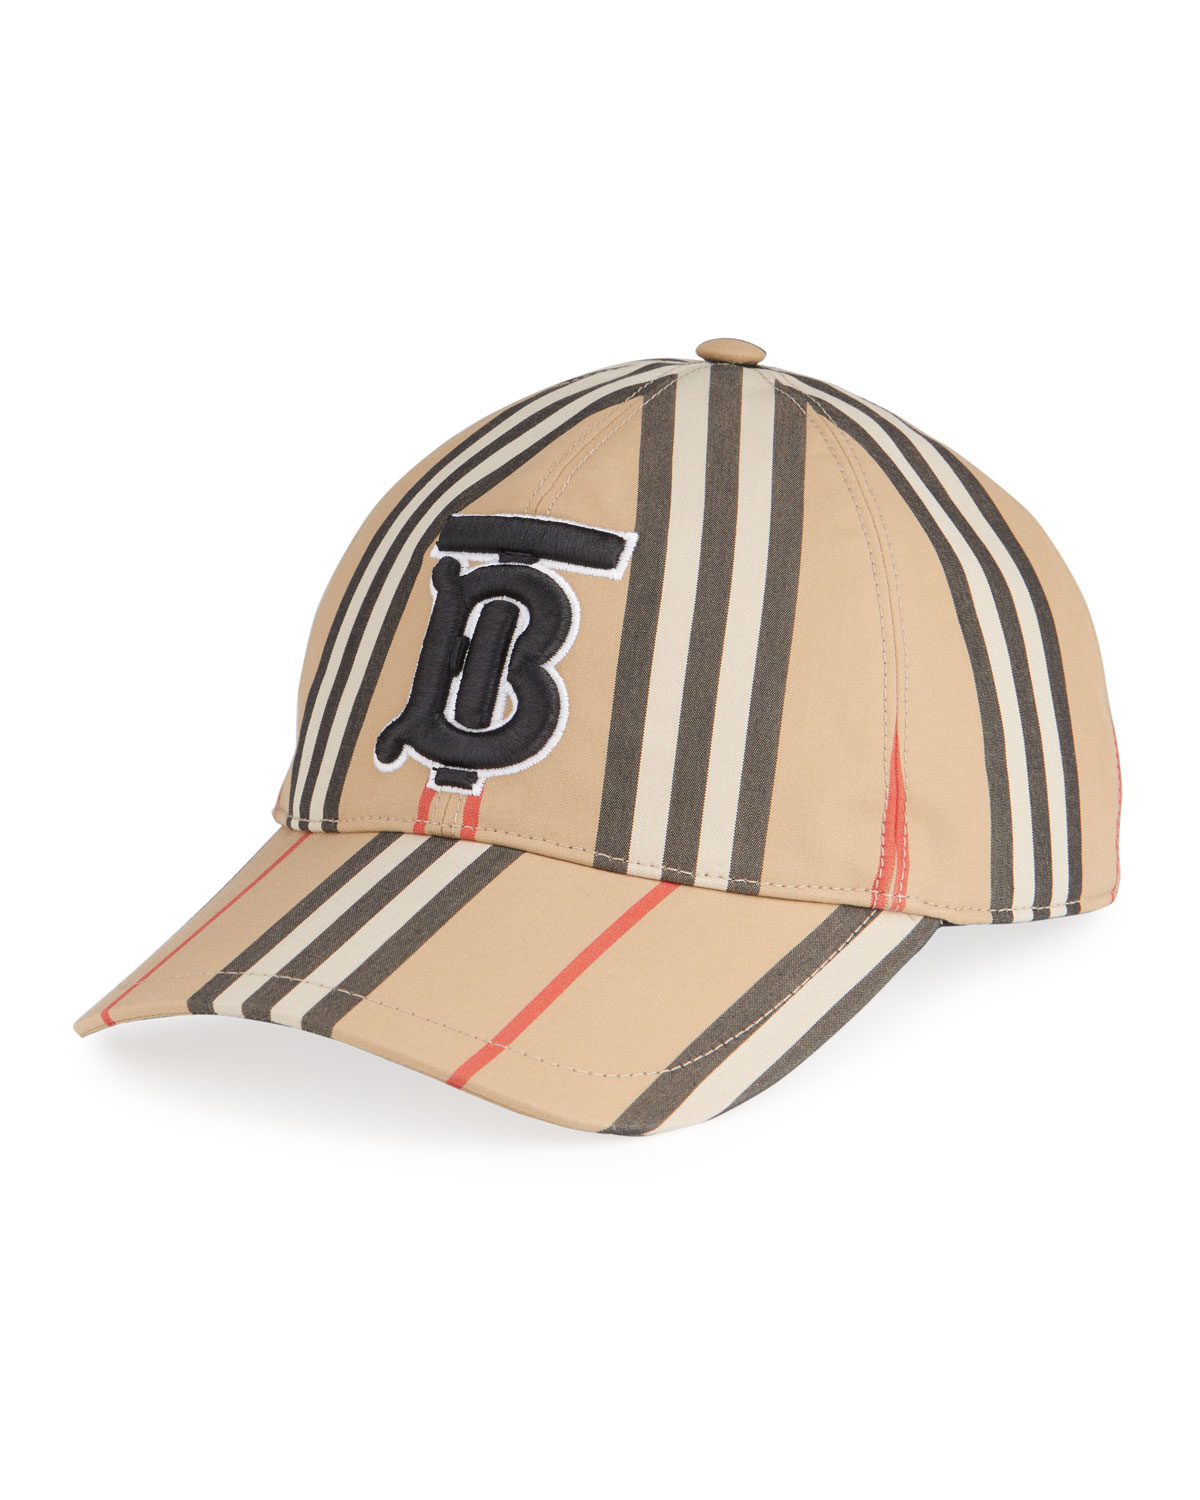 Burberry TB ICON STRIPE BASEBALL CAP